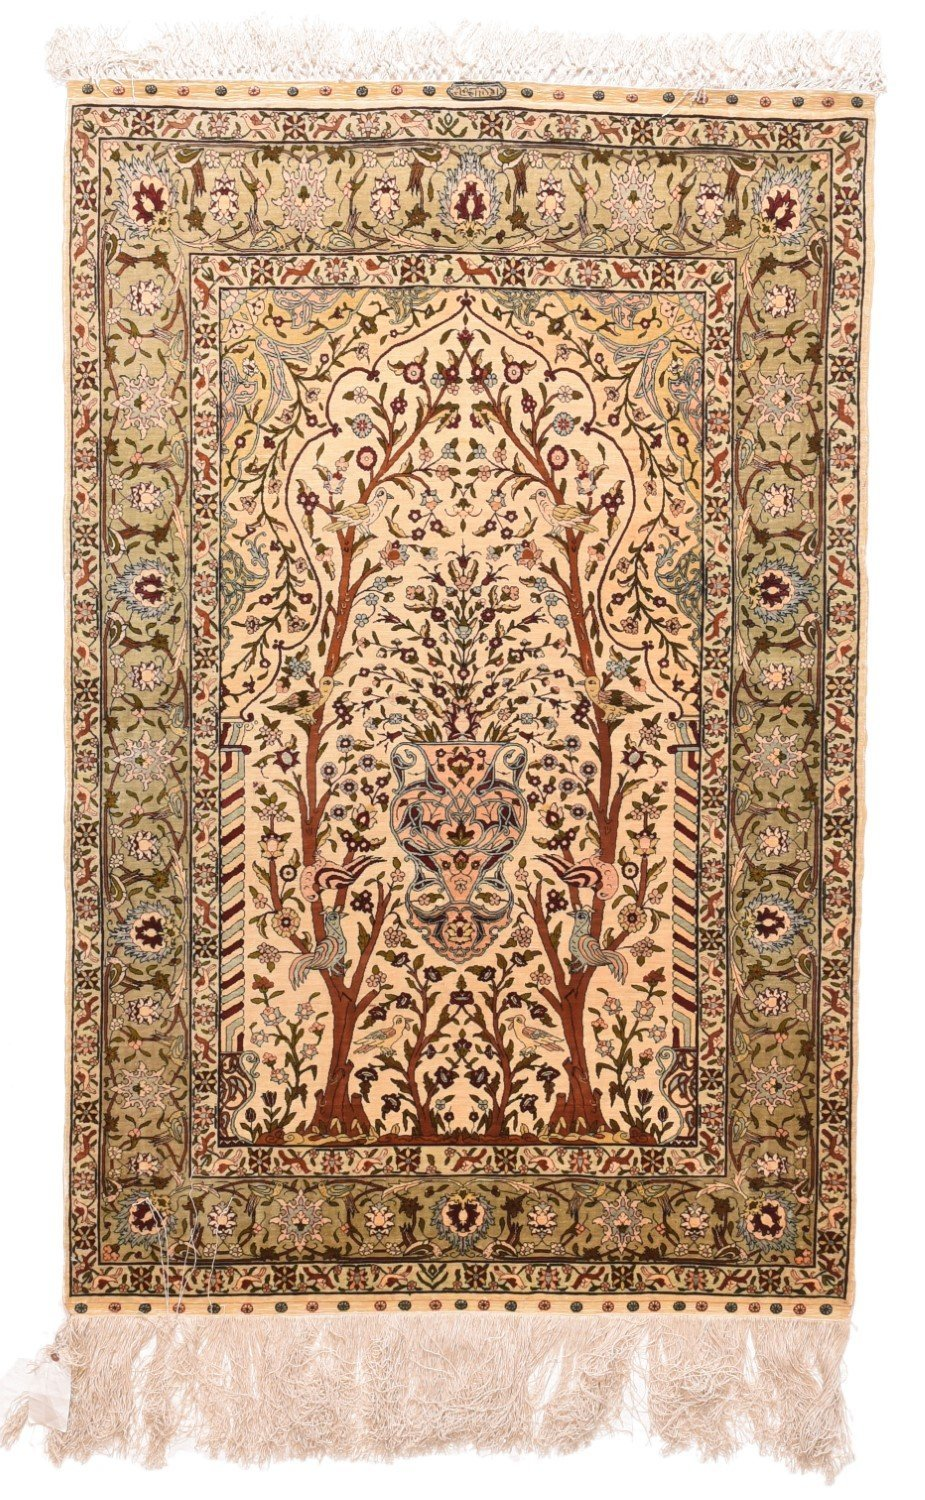 Antique Turkish Herekeh Rug